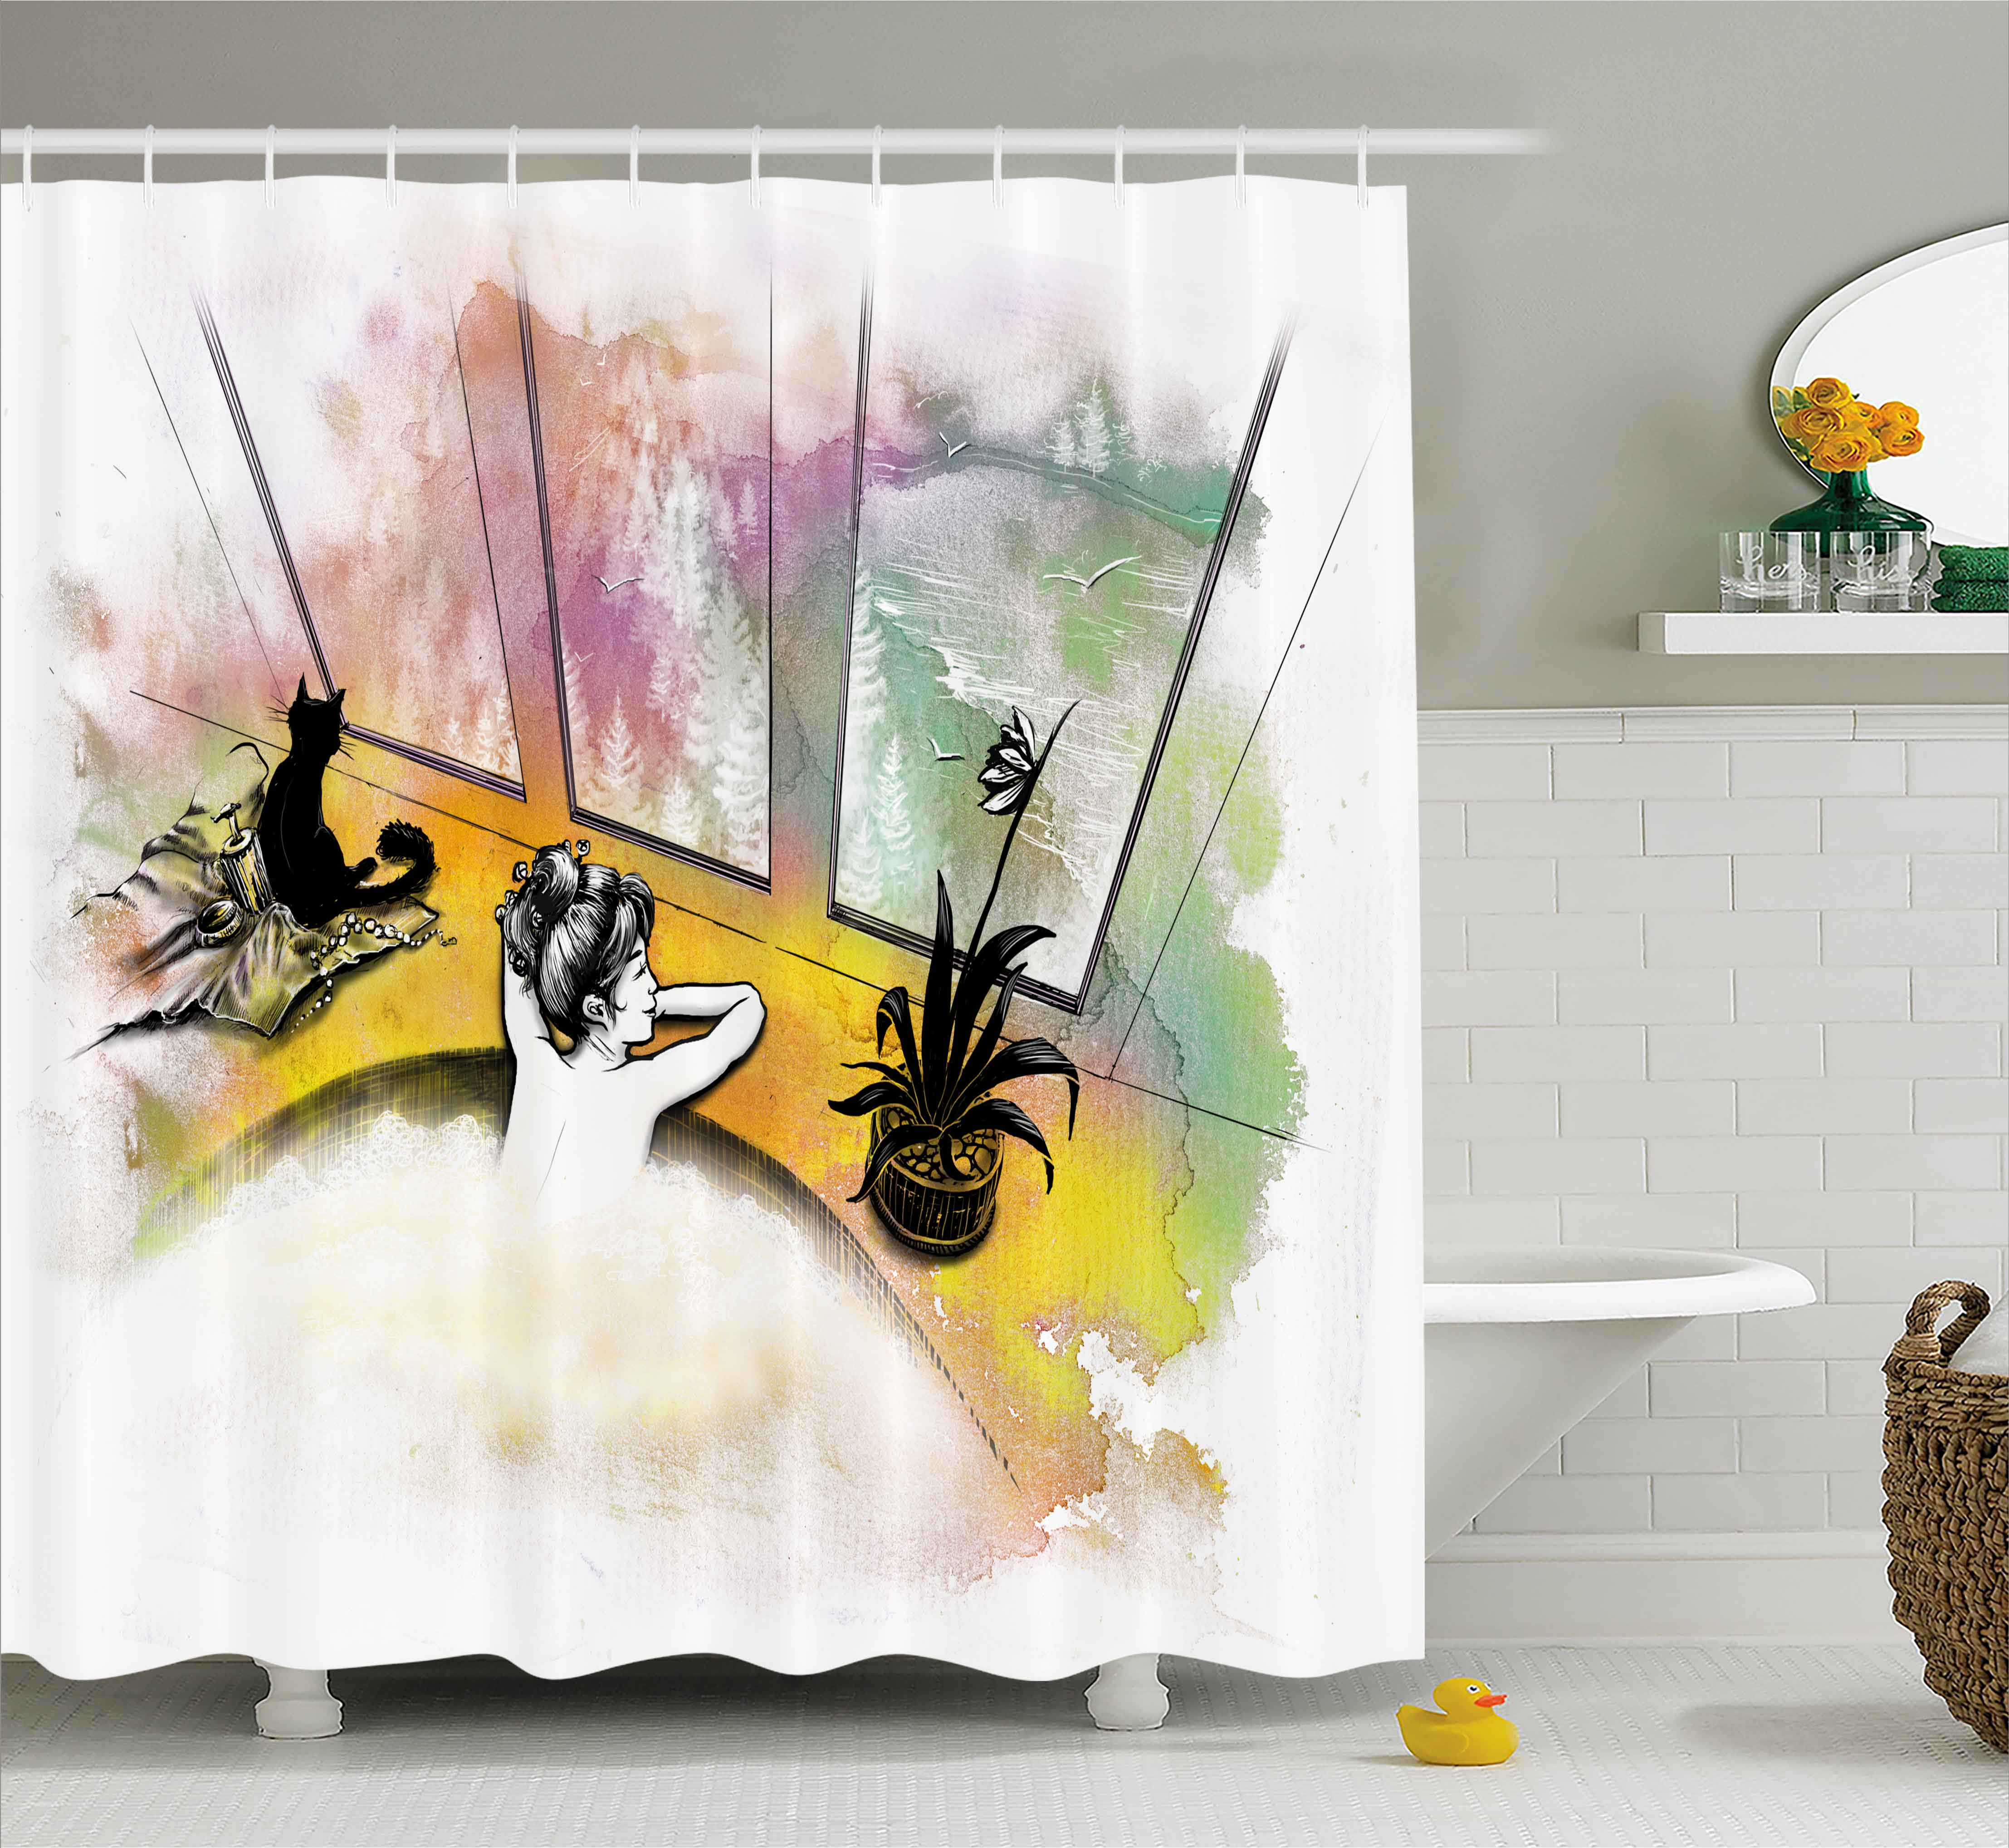 Modern Decor Shower Curtain, Girl with Cat Taking Bath in Spa Aroma Theraphy Relaxing Peaceful Illustration, Fabric Bathroom Set with Hooks, 69W X 84L Inches Extra Long, Multicolor, by Ambesonne